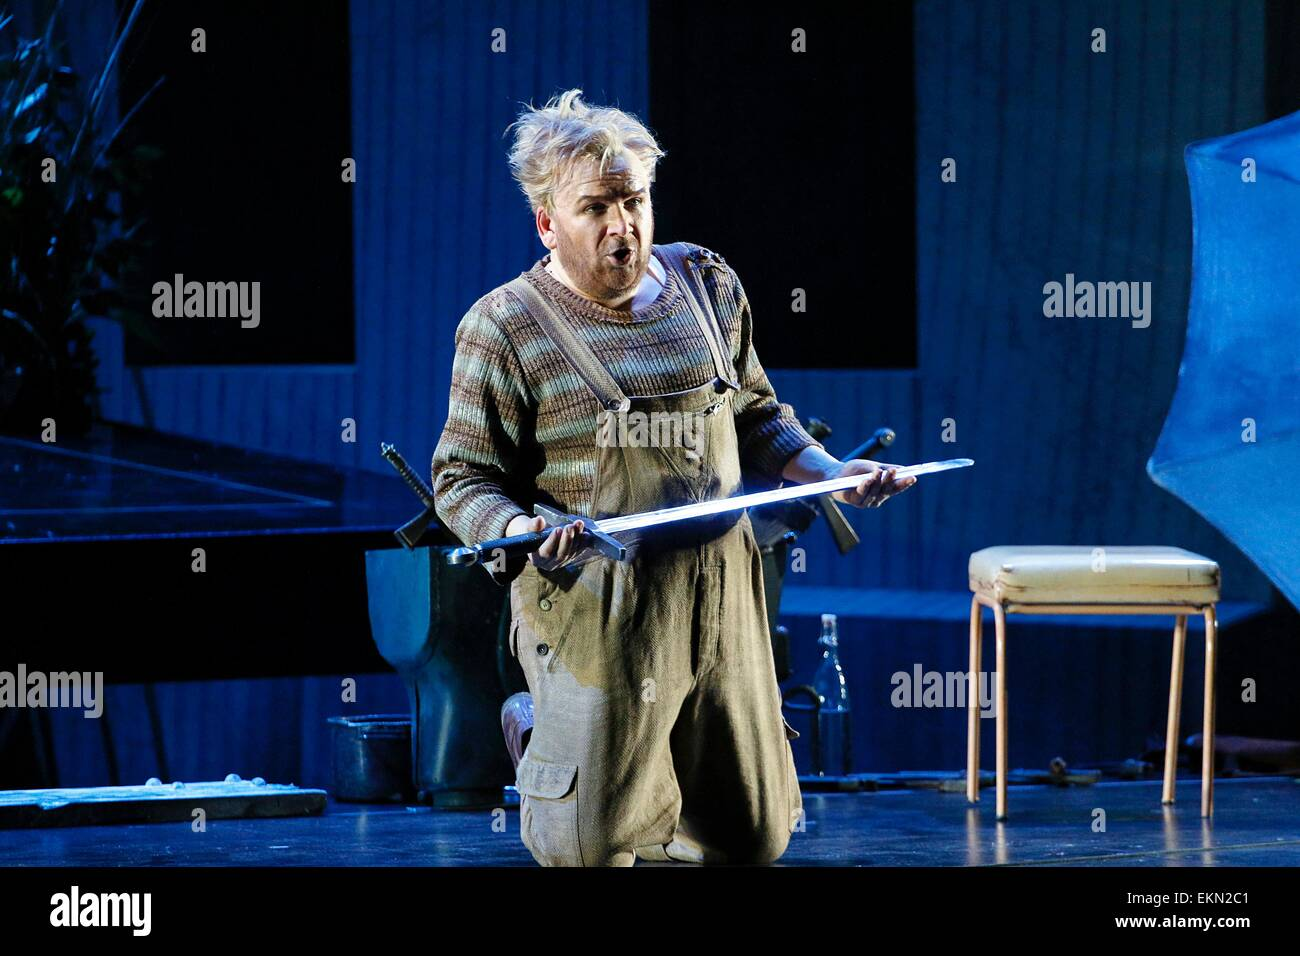 Leipzig, Germany. 7th April 2015, Christian Franz performs as Siegfried in the final dress rehearsal of Richard - Stock Image